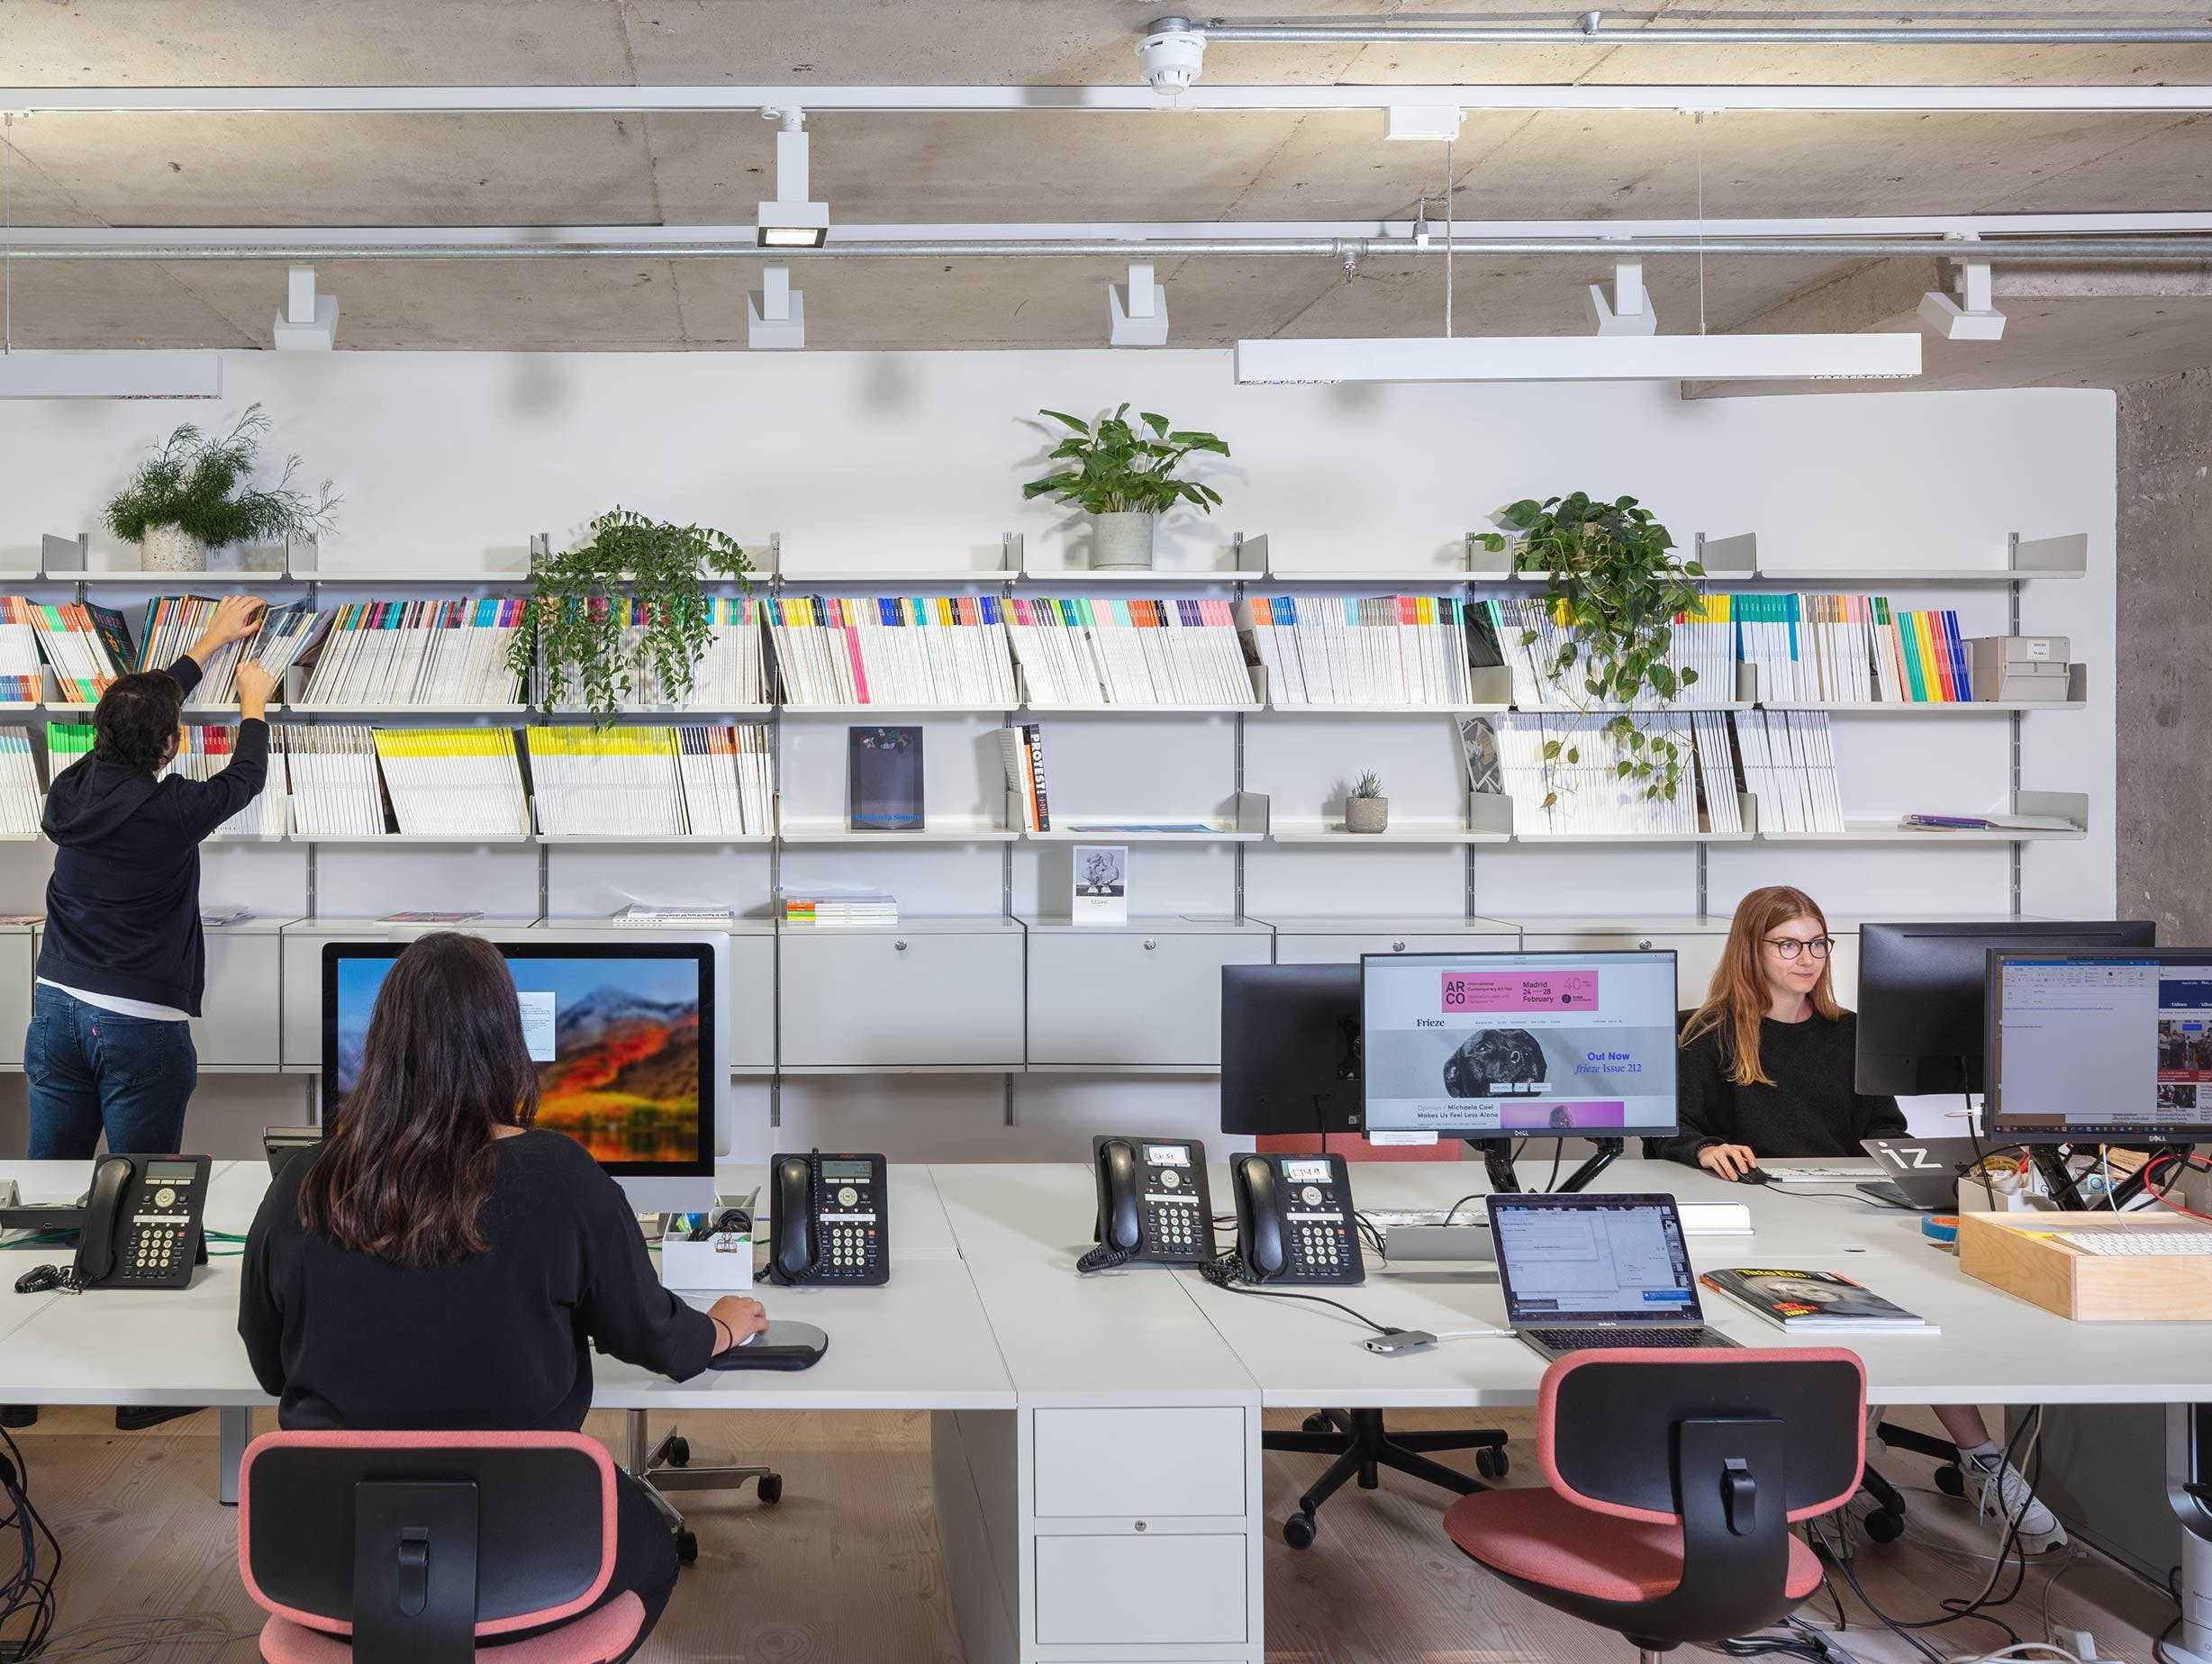 Frieze offices by fleet architects 5 image